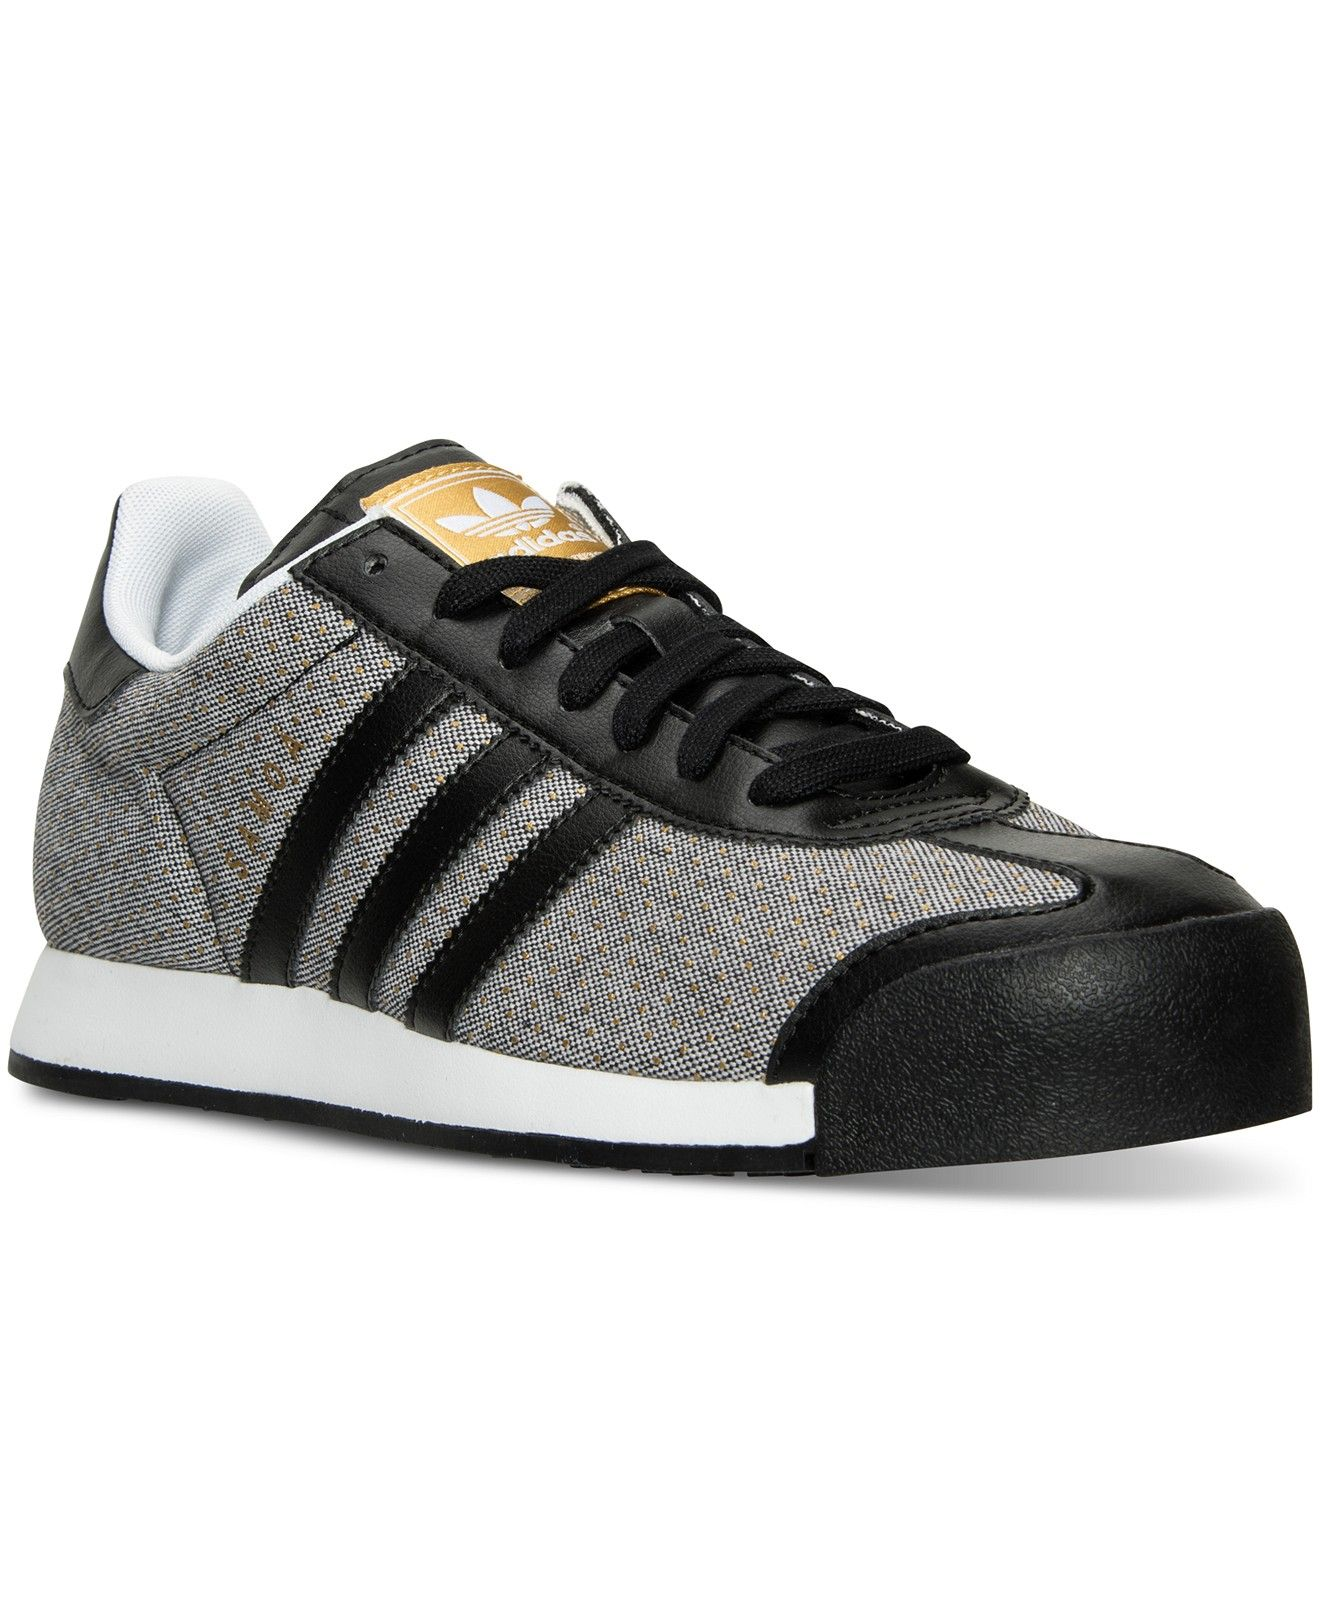 adidas Women\u0027s Samoa Casual Sneakers from Finish Line - Finish Line  Athletic Shoes - Shoes -